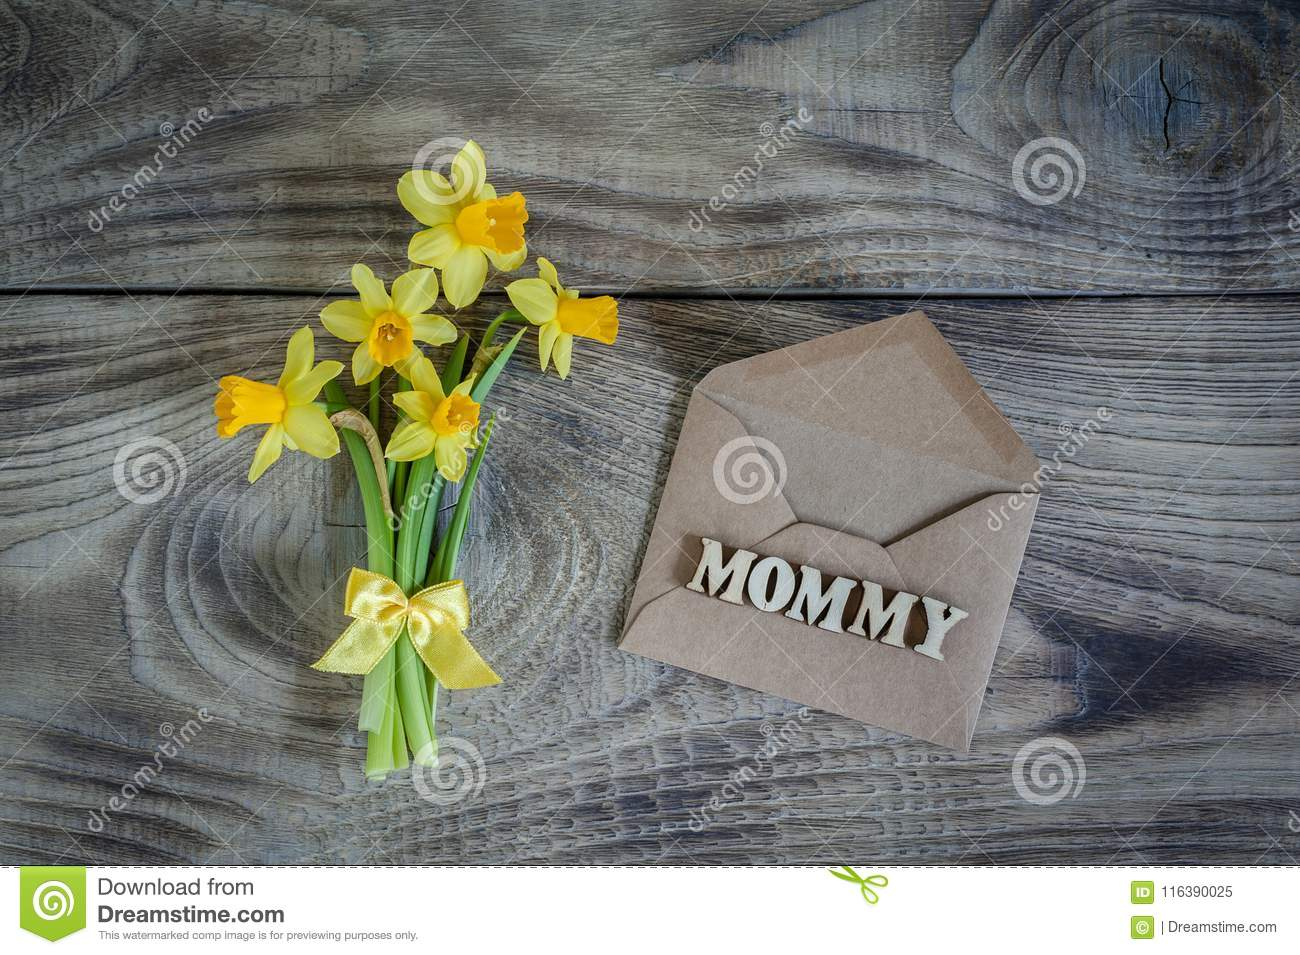 Daffodils with envelope on wooden background. Greeting card.